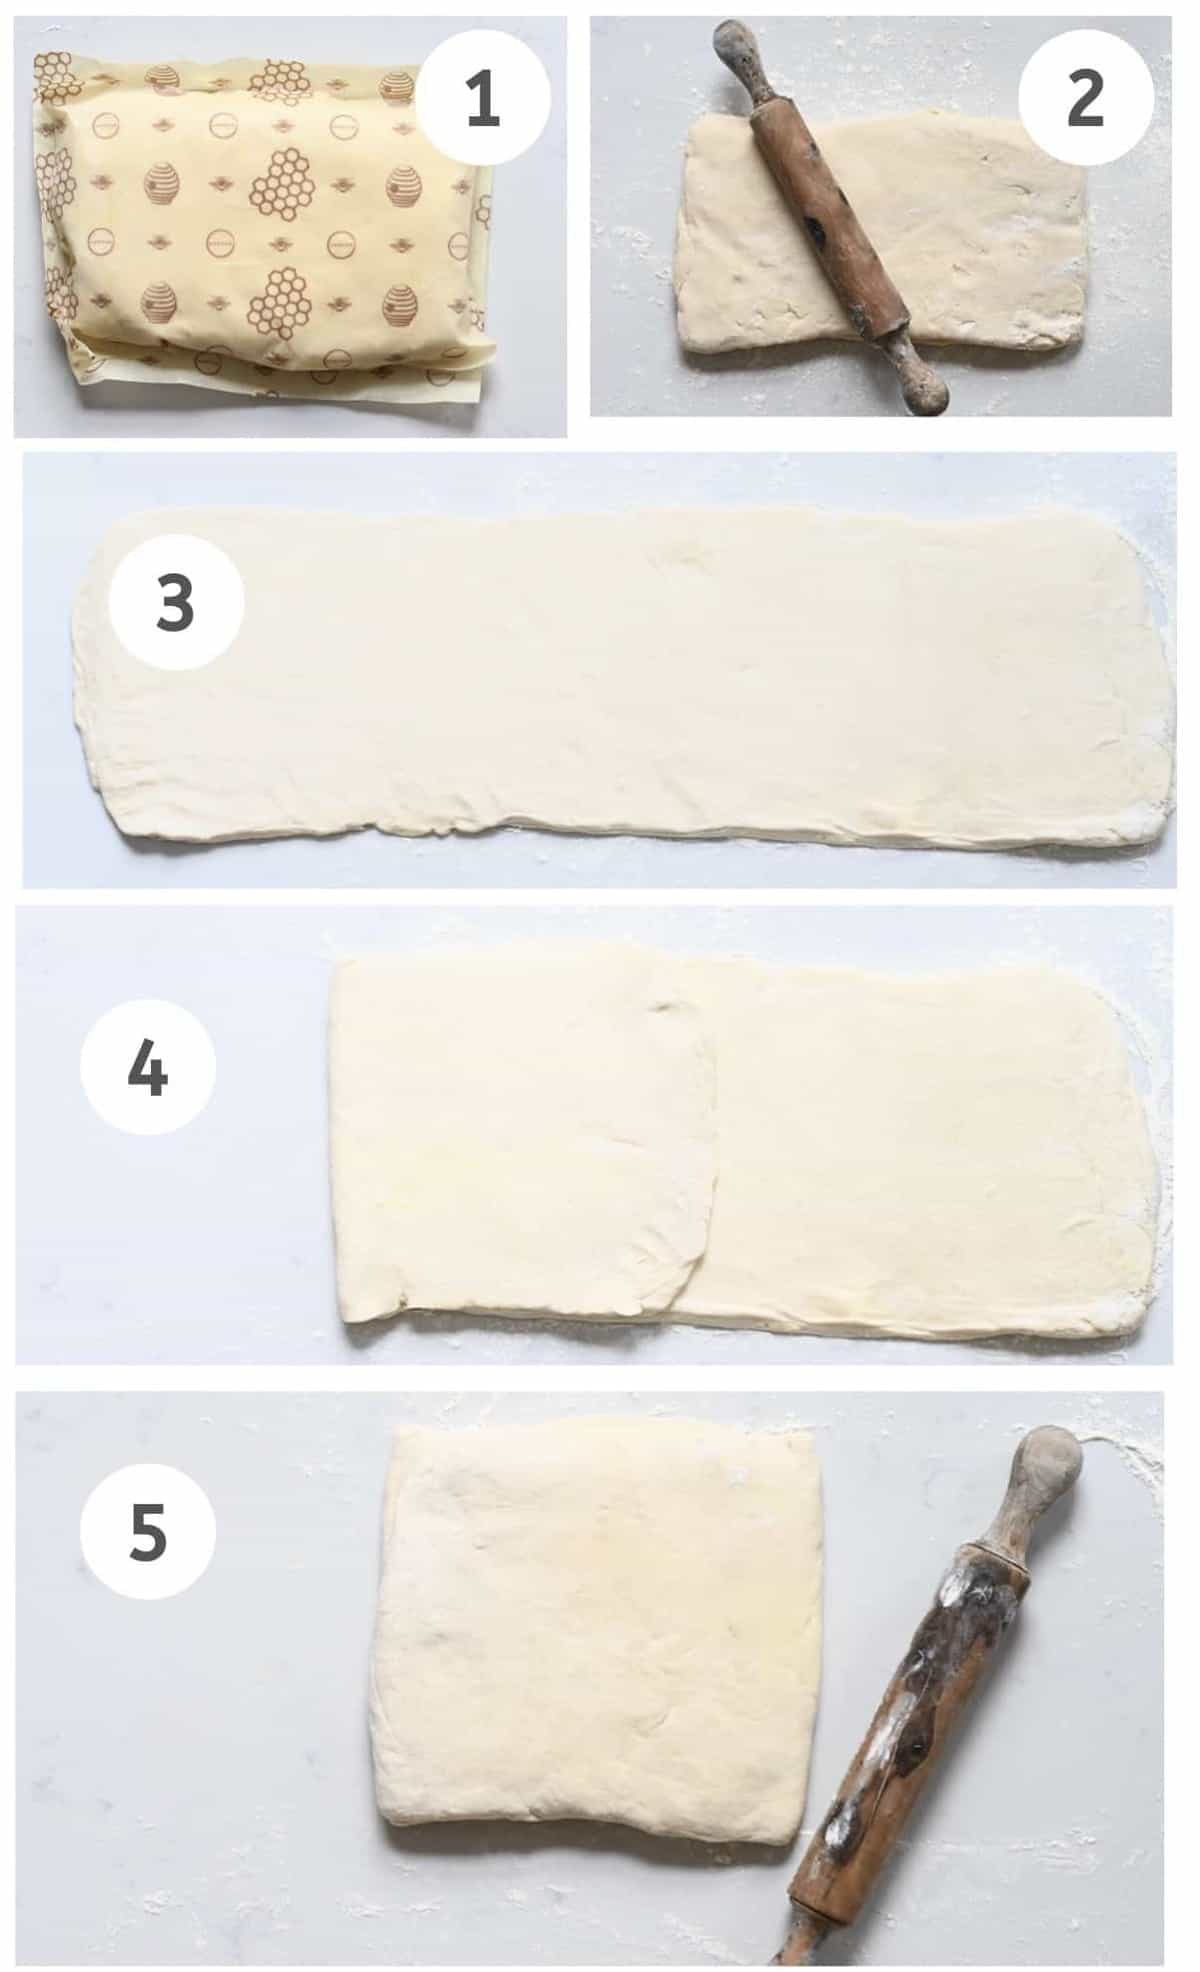 Steps to laminating dough for croissant